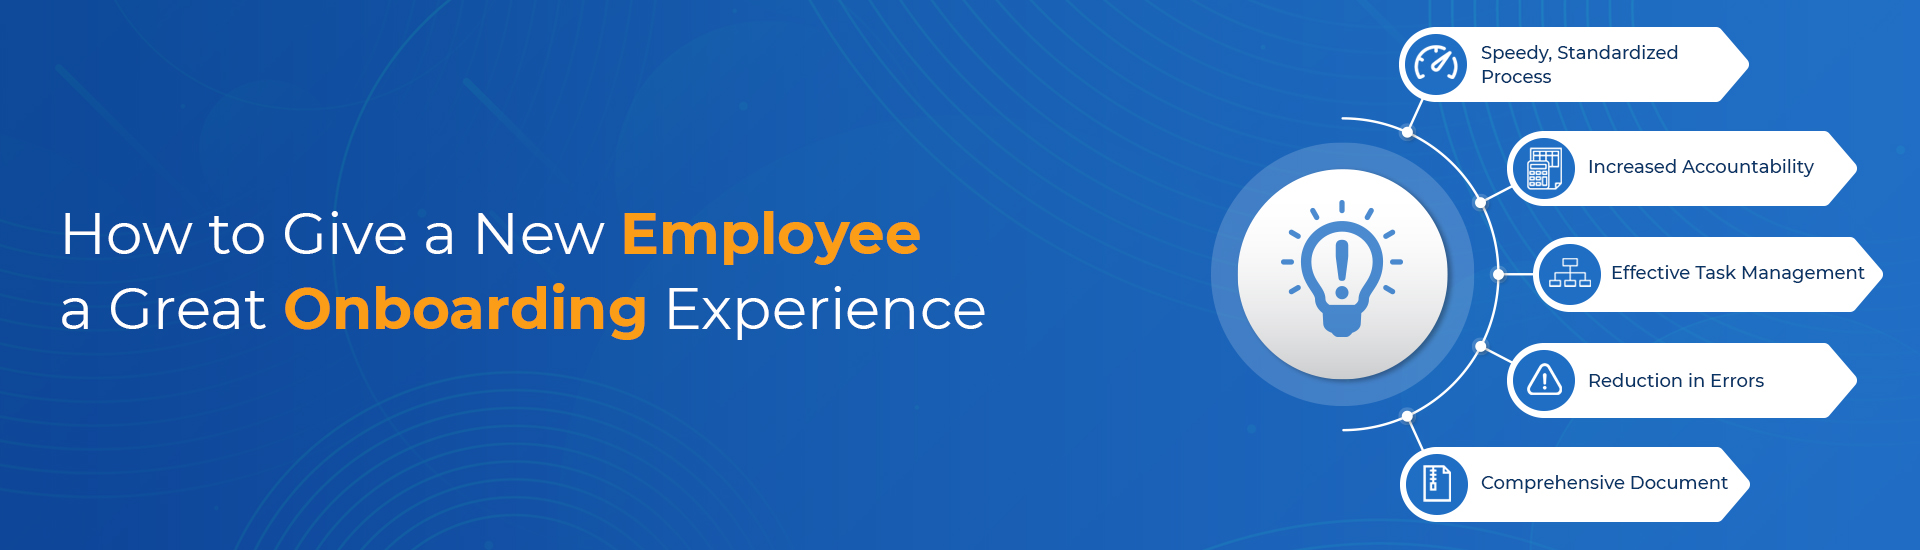 How to Enhance New Employee Onboarding Experiences?